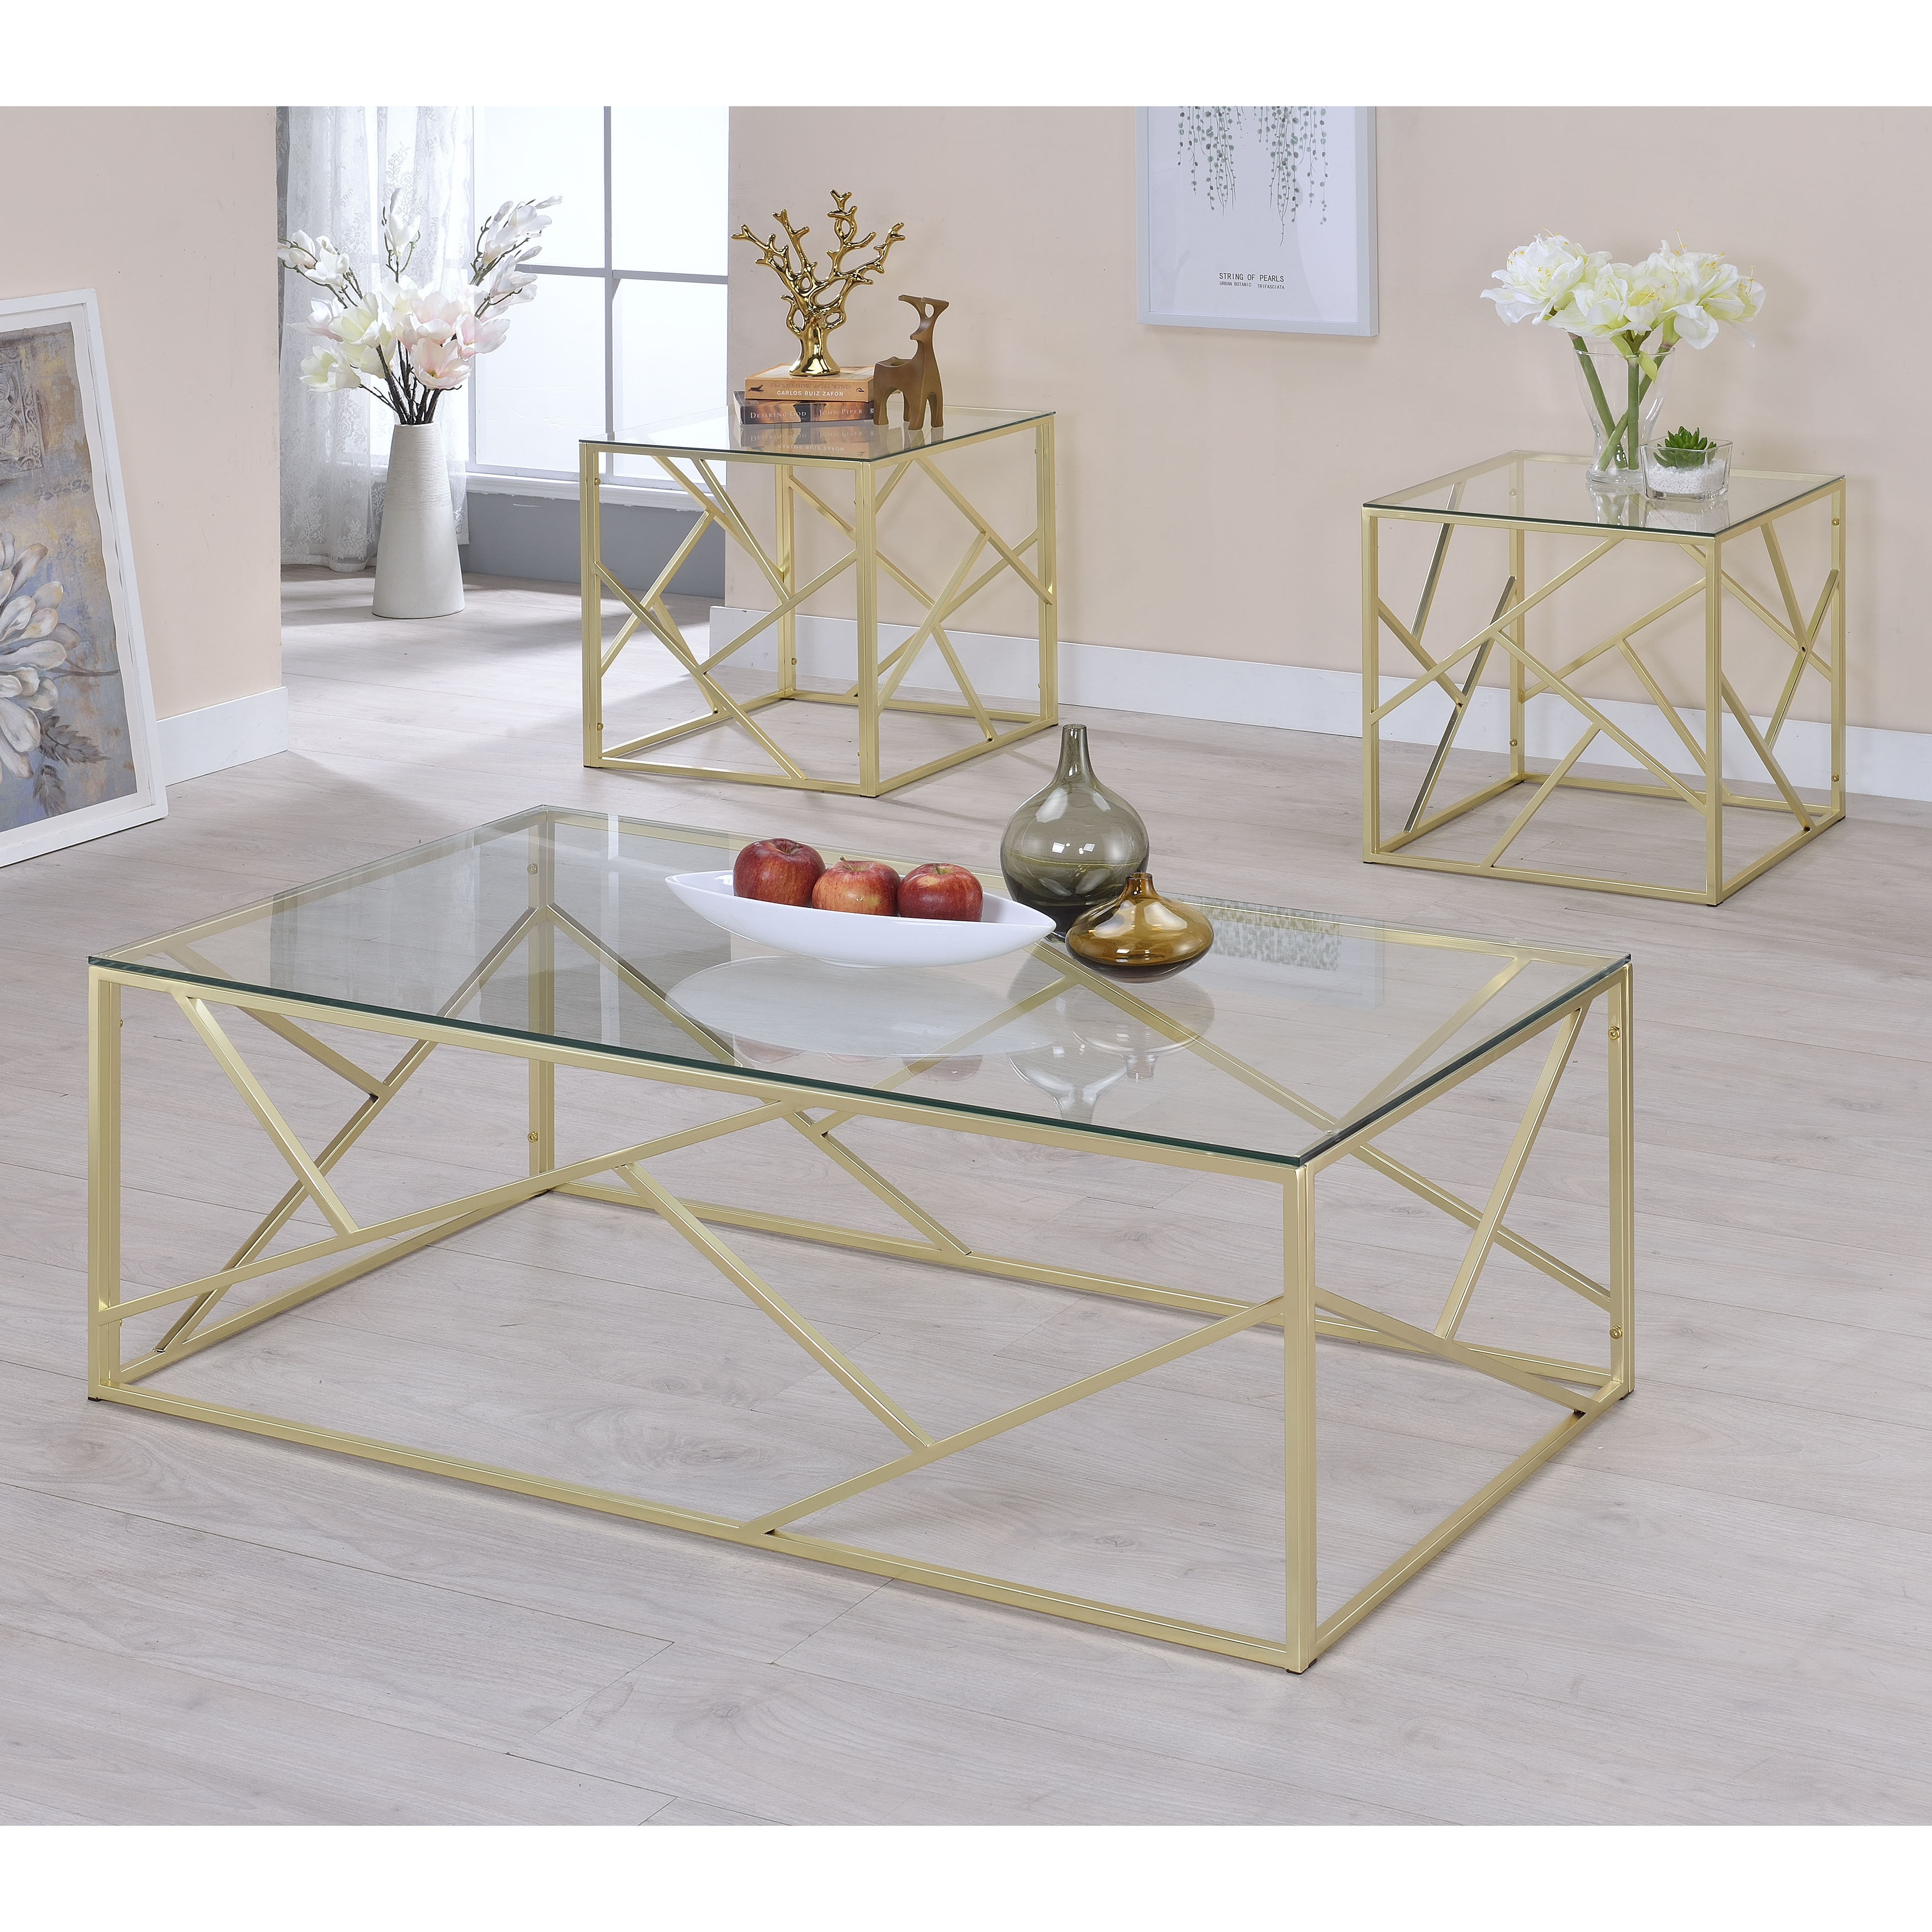 furniture america enderin contemporary metal tempered glass piece accent table set champagne beige beach style lamps kitchen bench ikea lamp with usb port console tables pine